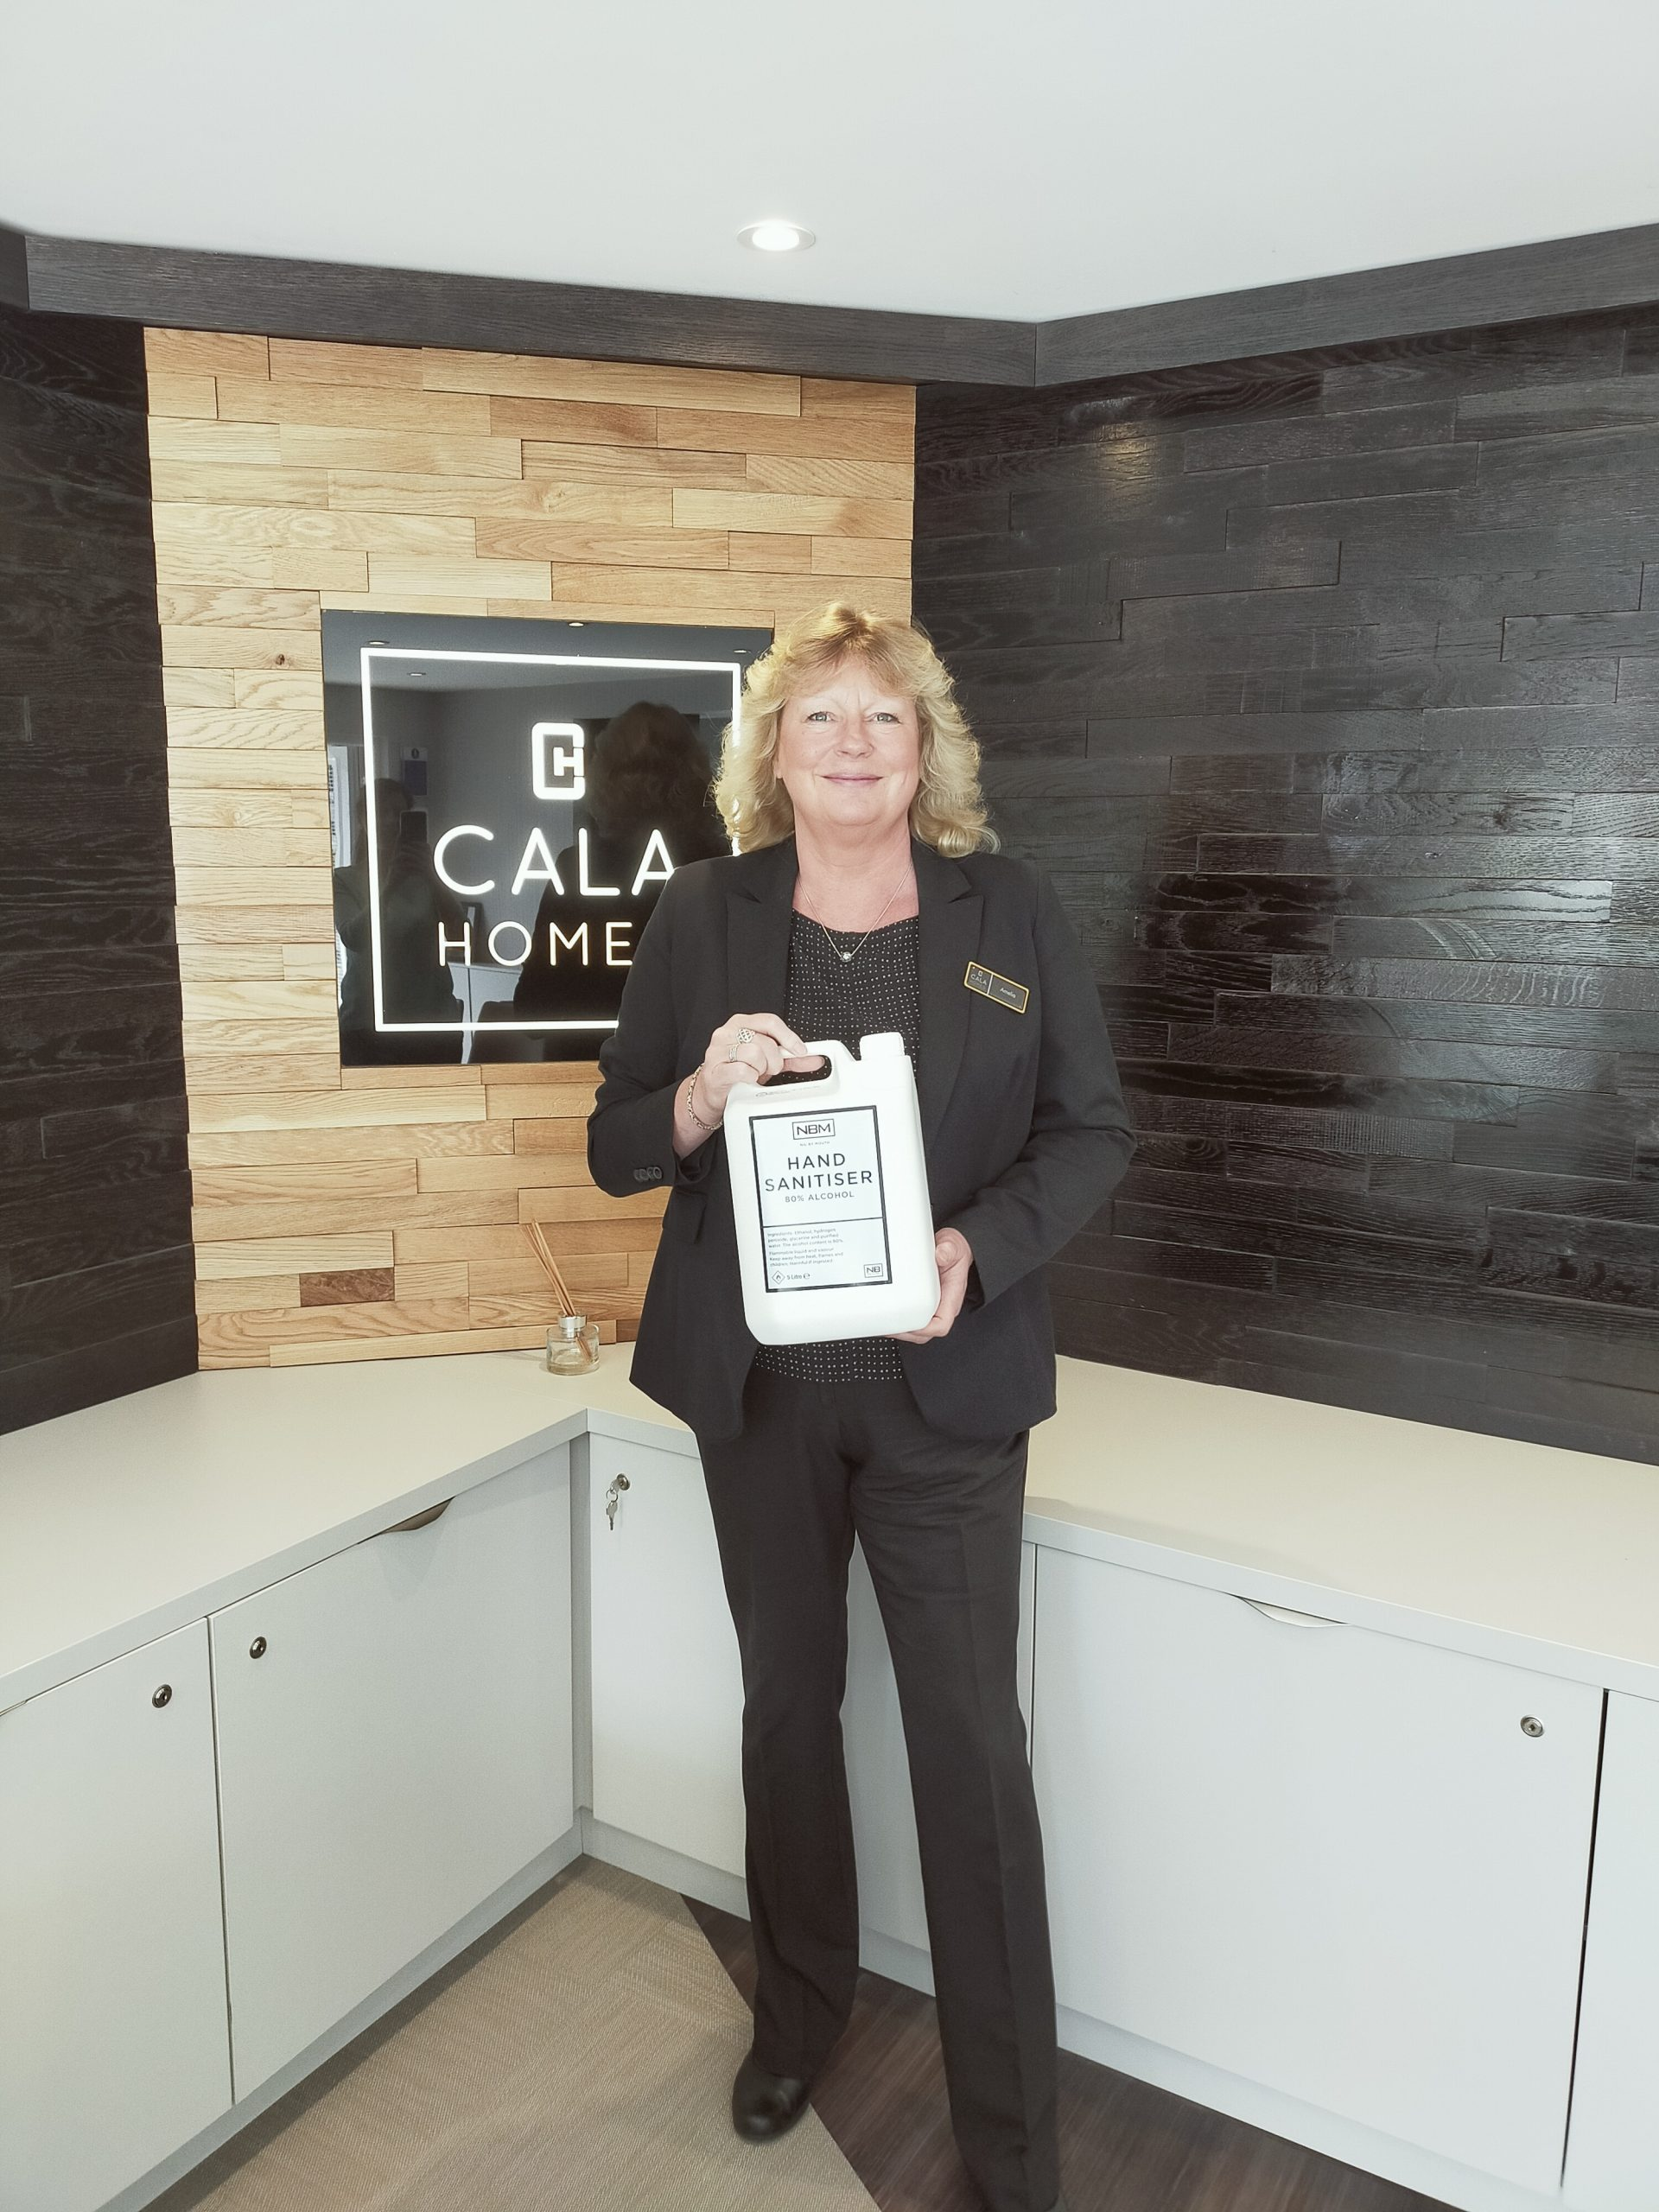 Sanitiser Purchase Is Just The Tonic For Cala Homes photo